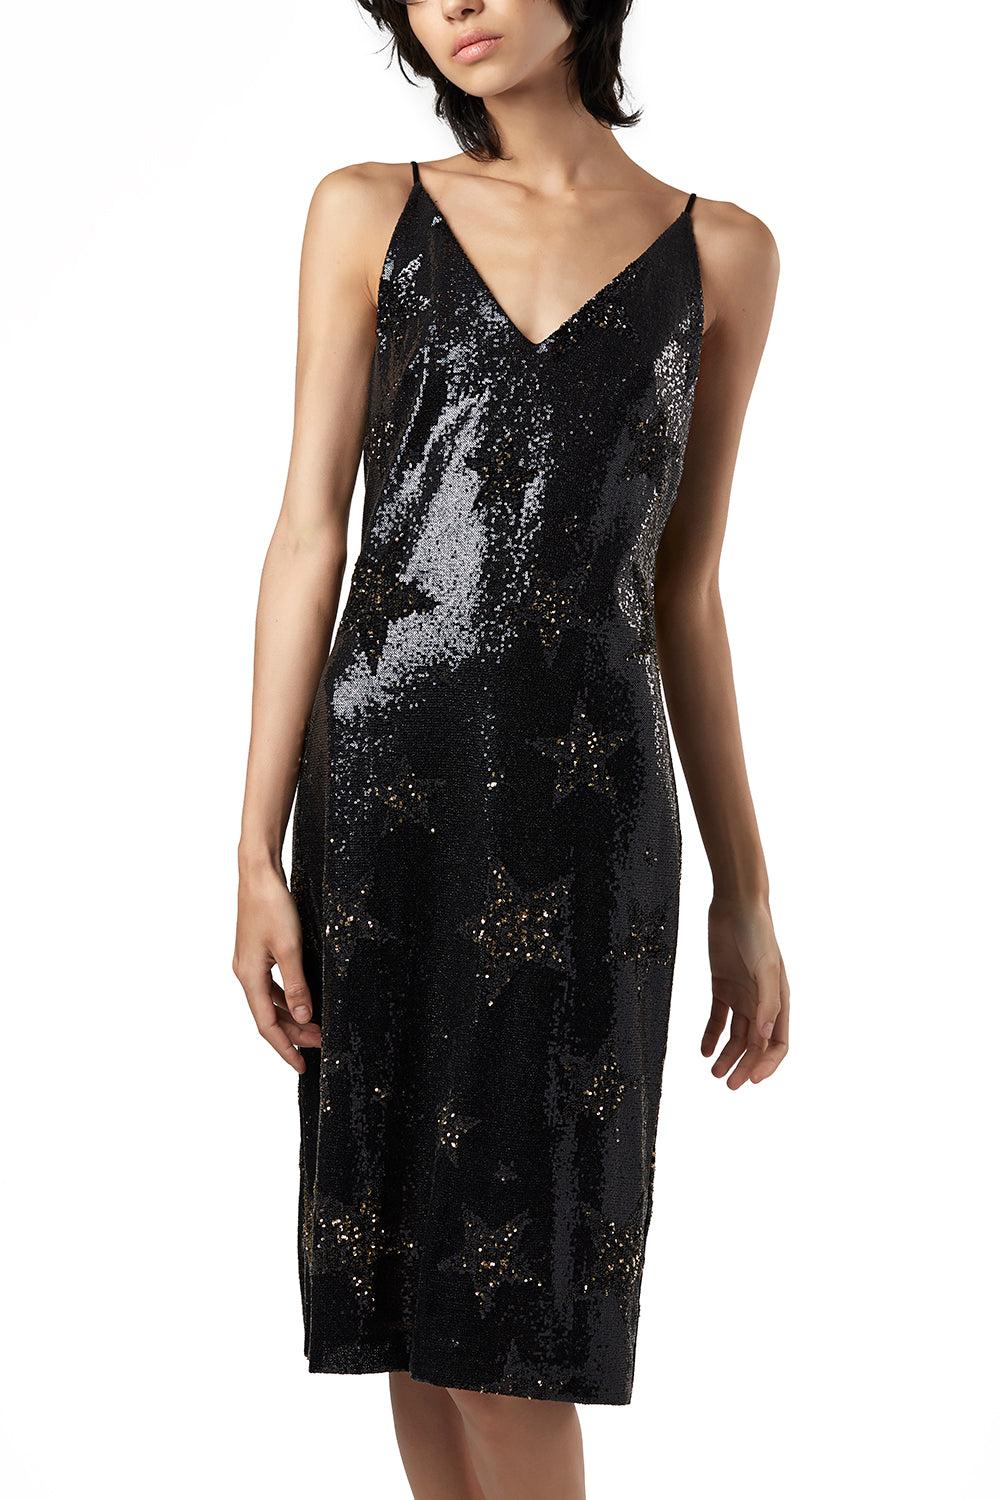 WARDOG Star Sequin Slip Dress